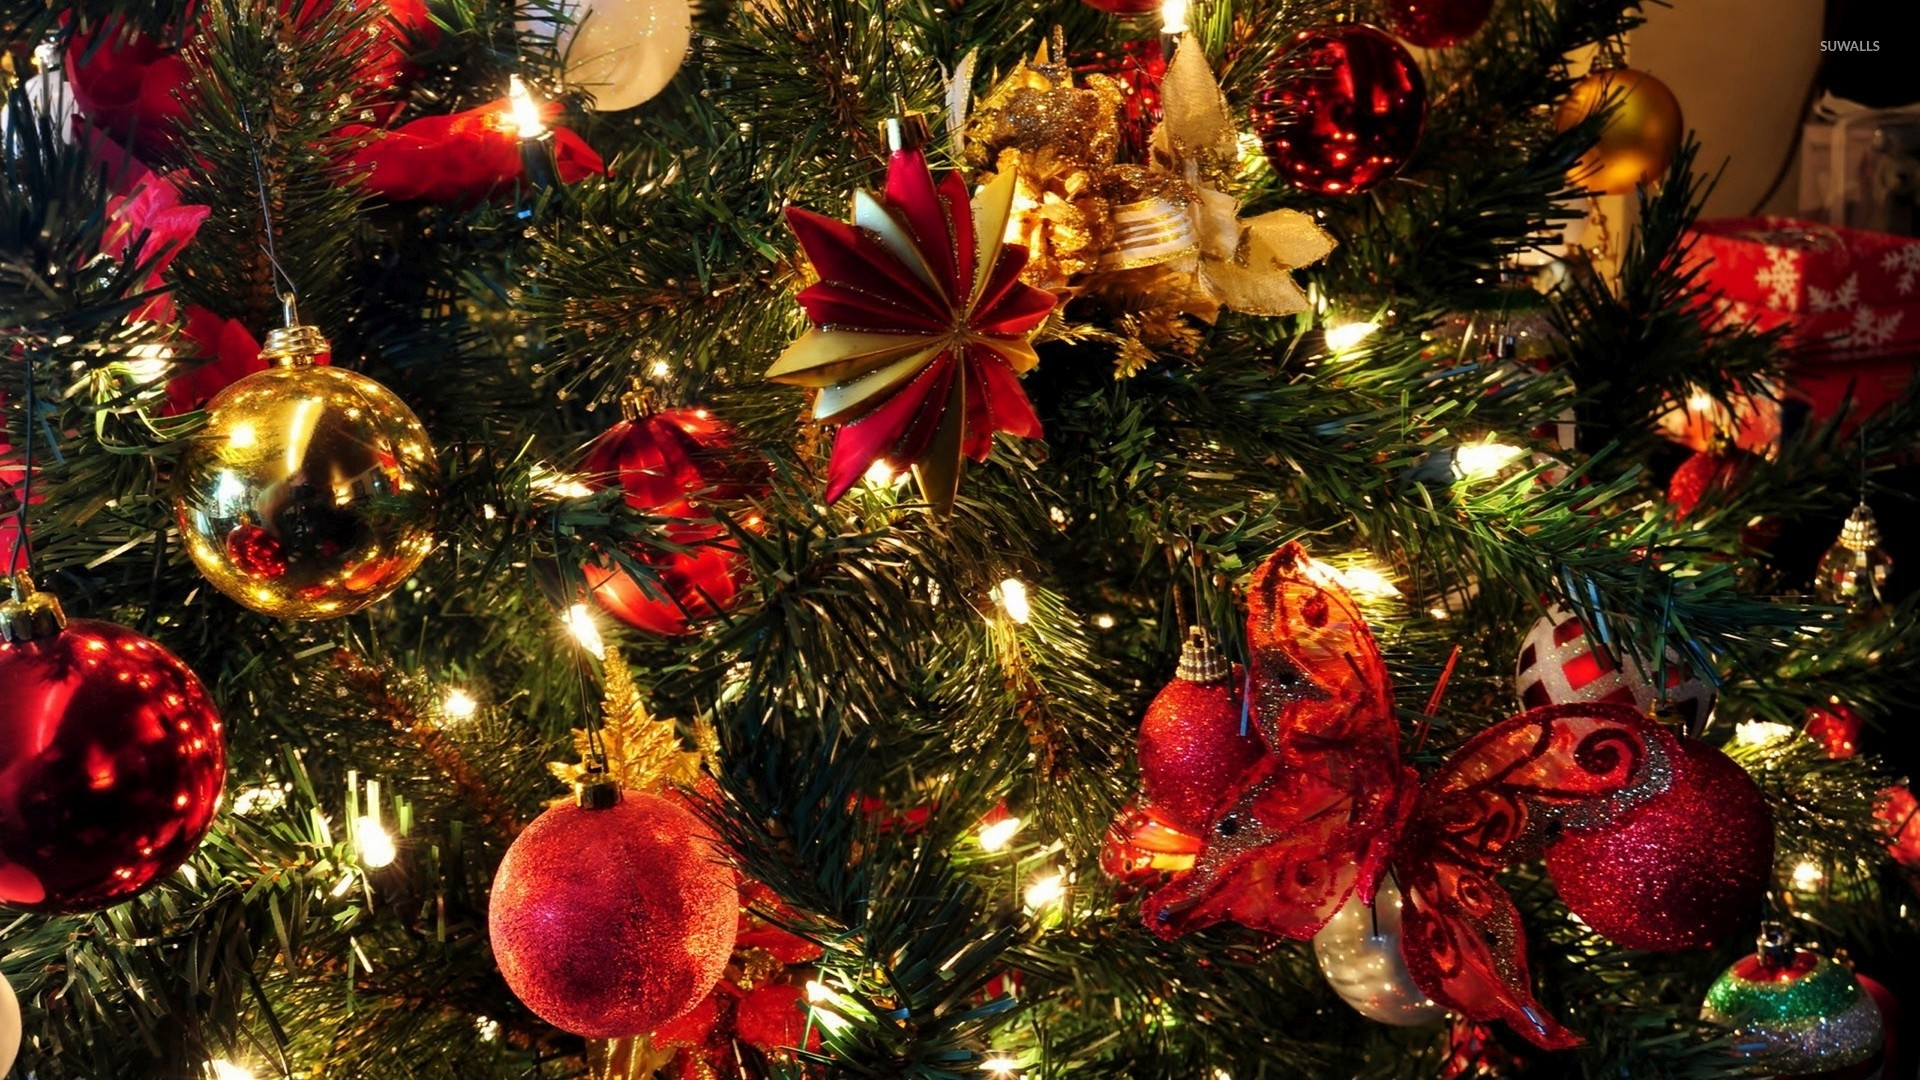 1920x1080 Christmas tree with red and golden baubles wallpaper  jpg